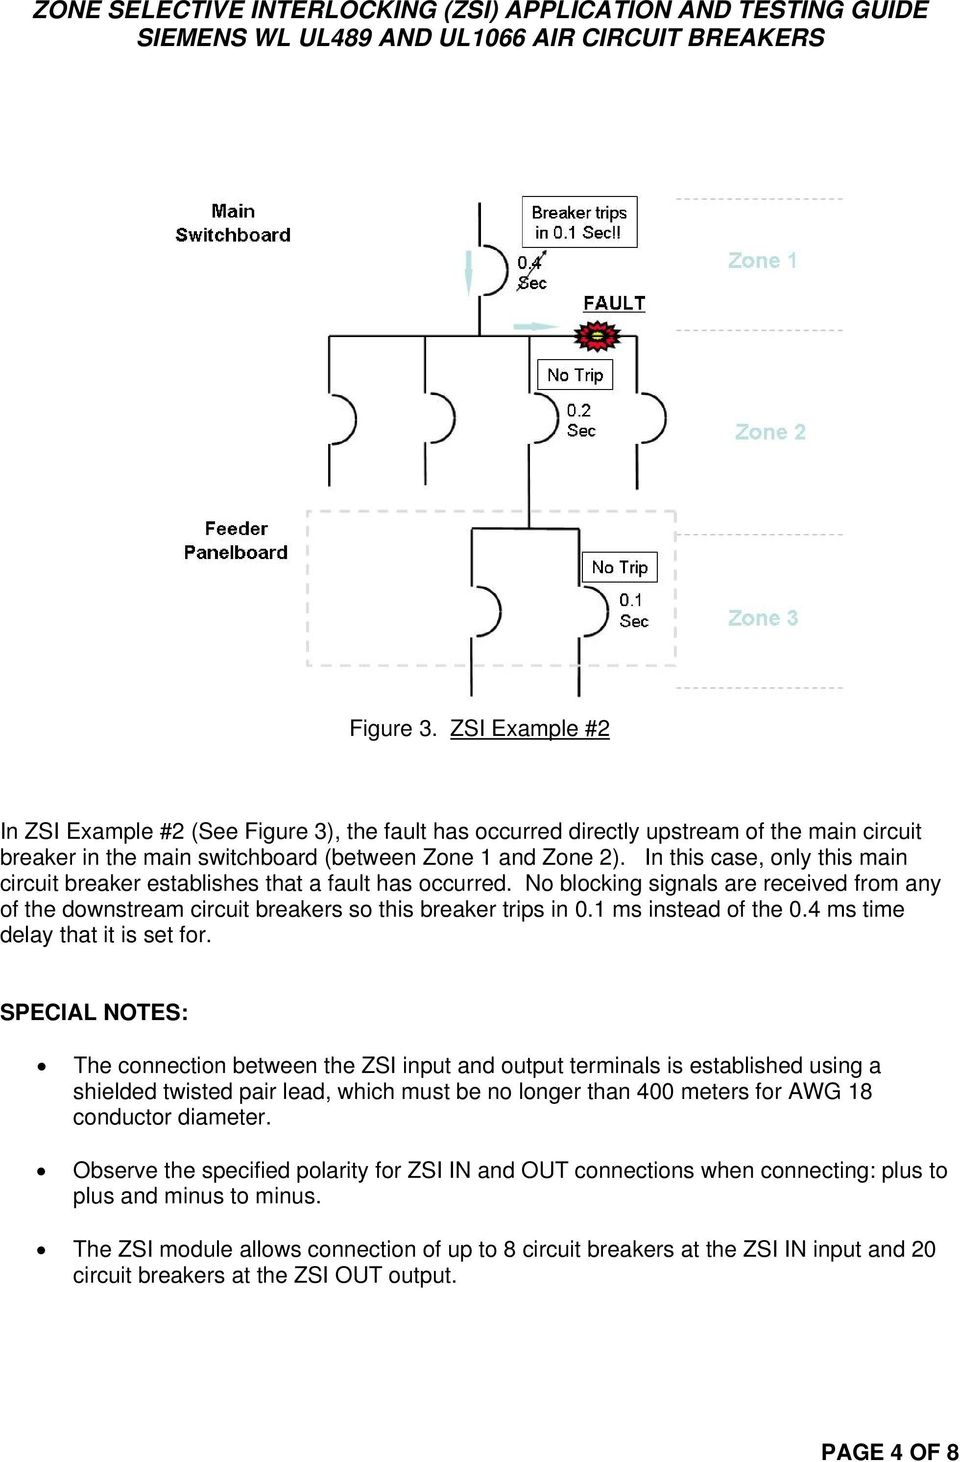 Zone Selective Interlocking Zsi Application And Testing Guide Arcfault Circuit Breakers Prevent Fires Absolute Electric 1 Ms Instead Of The 04 Time Delay That It Is Set For